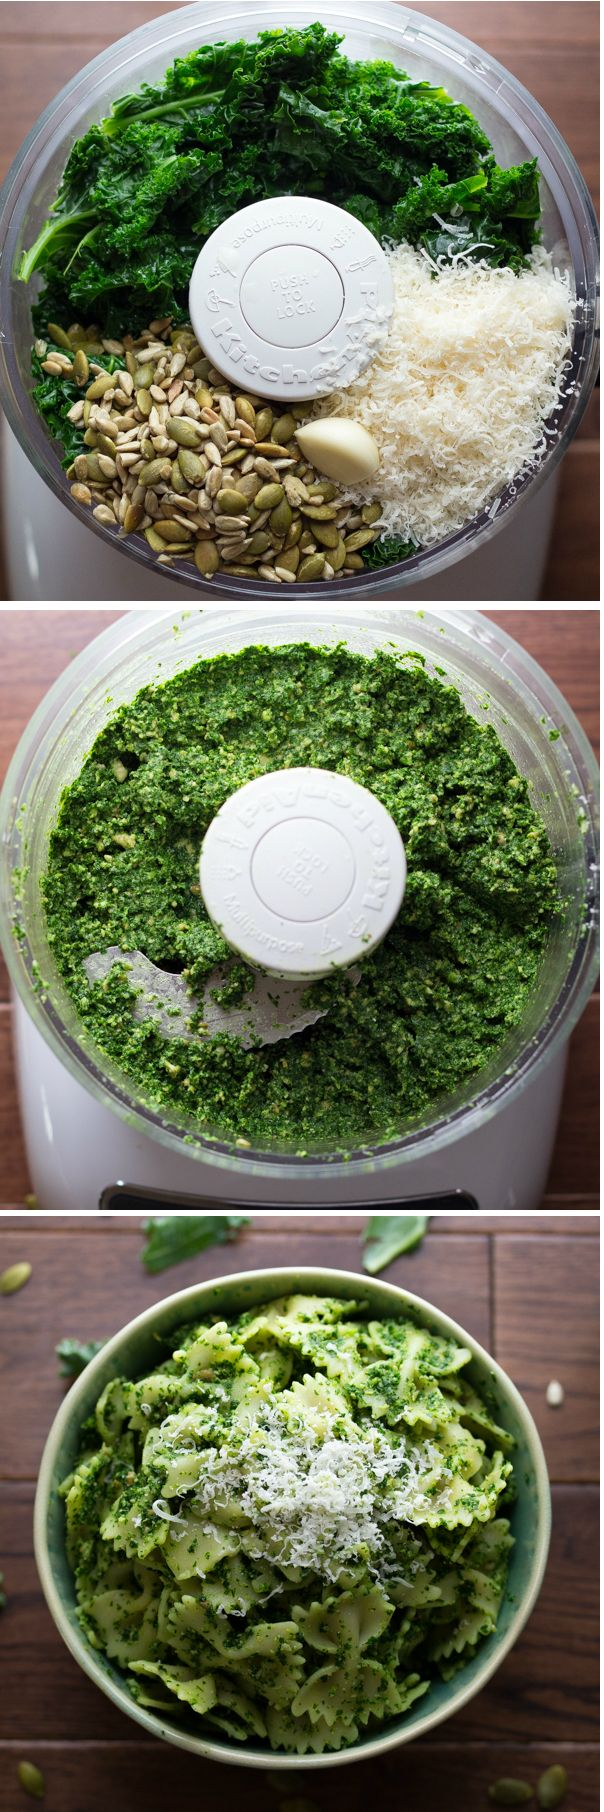 Kale, Pepita & Sunflower Seed Pesto, a perfect topping for pasta, pizza or sandwiches